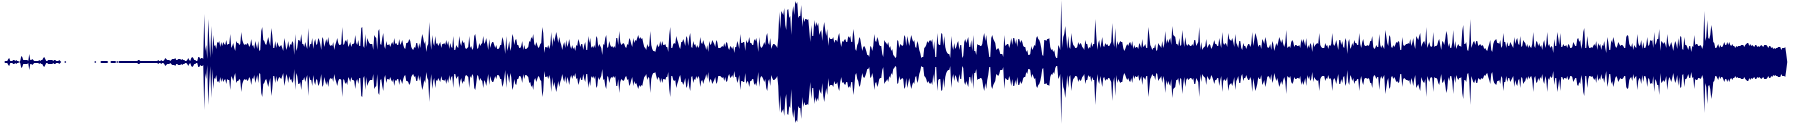 waveform of track #71202